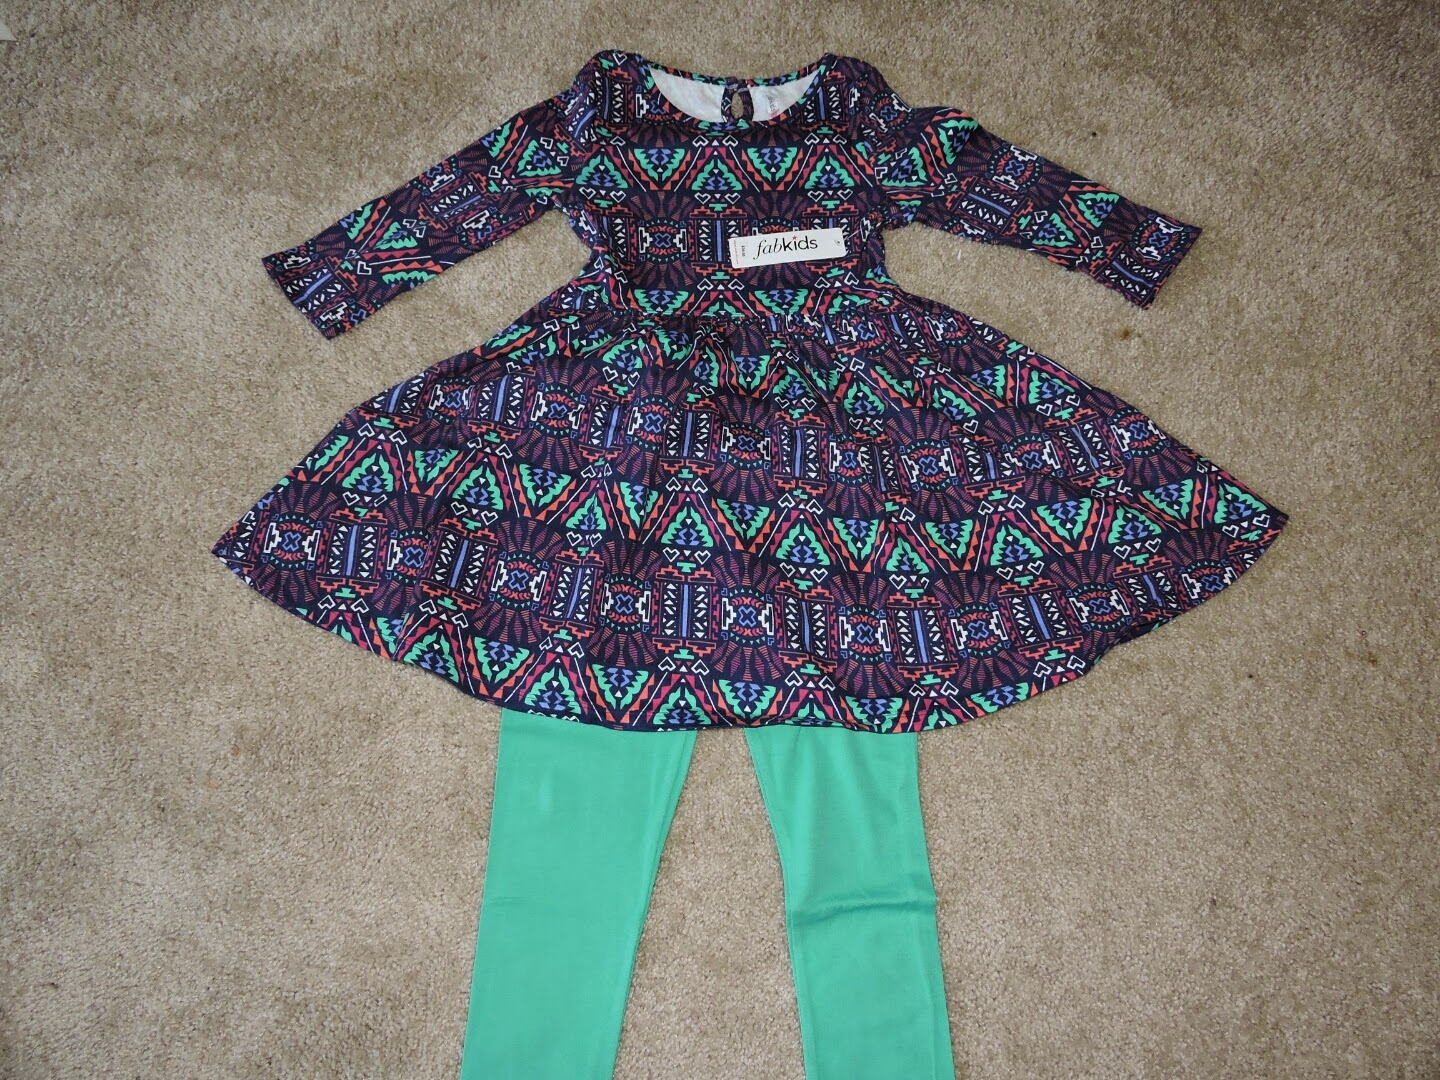 FabKids Fall Collection Review and Giveaway Ends 10/8 #LoveFabKids via www.Productreviewmom.com